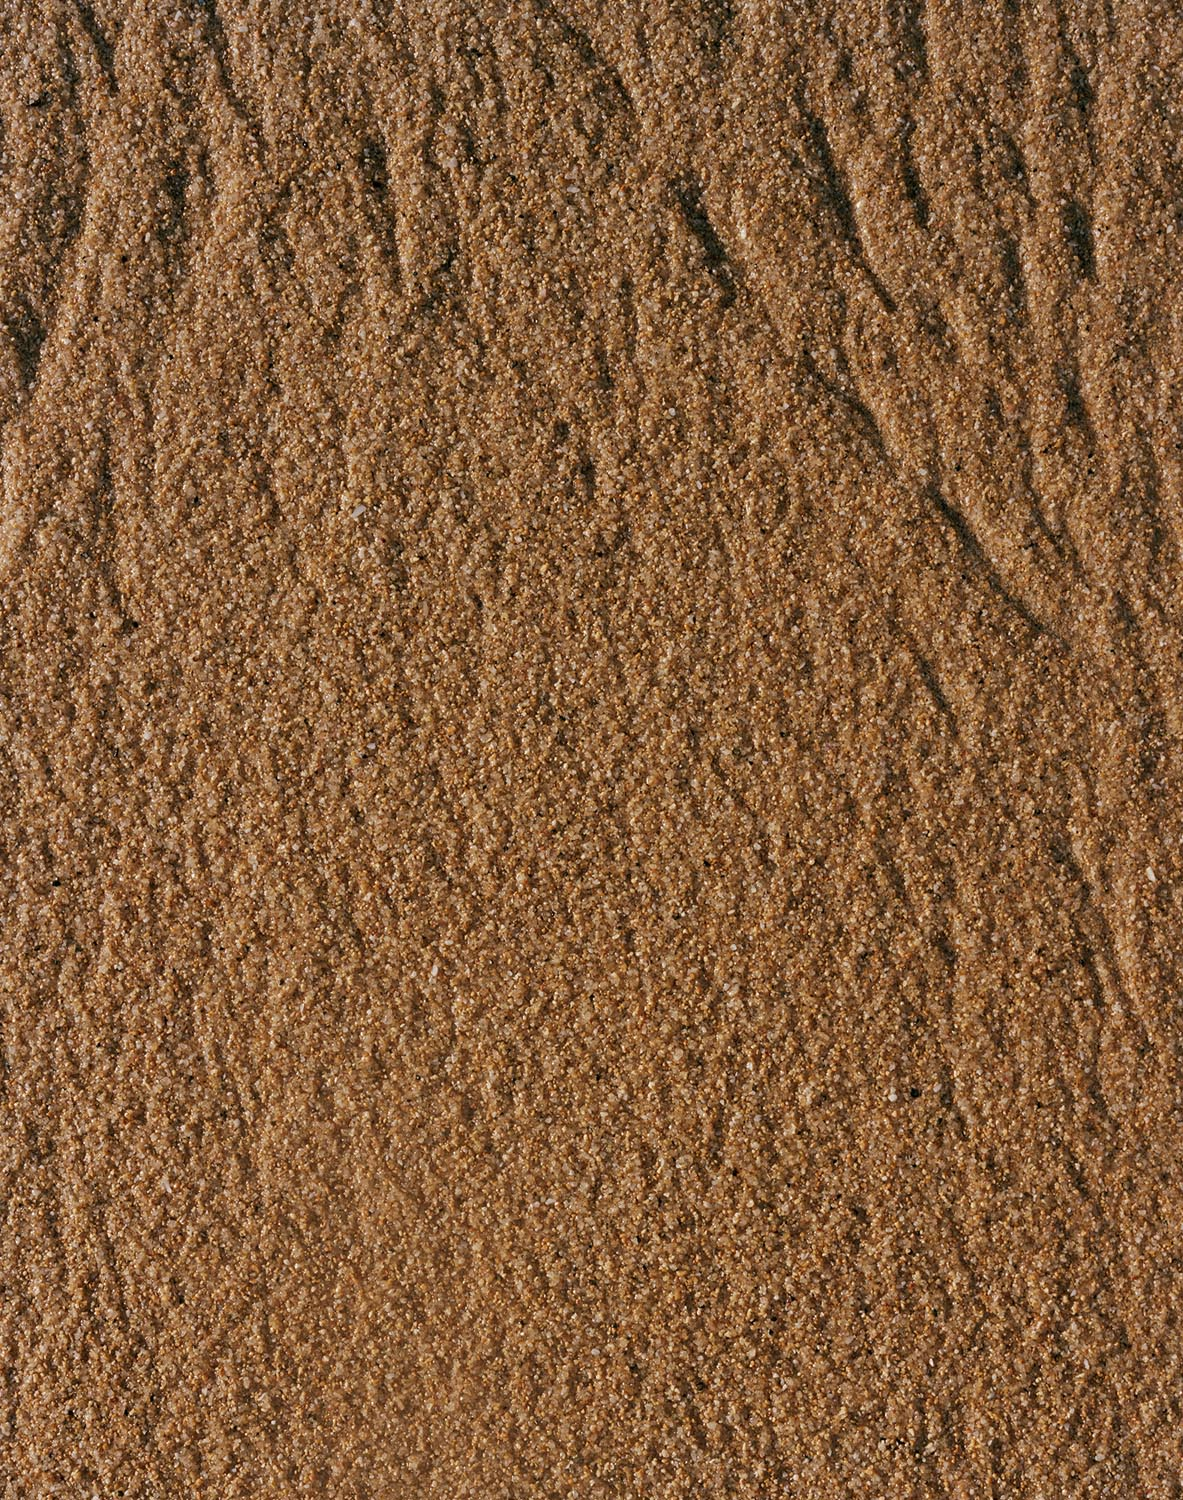 untitled-2010-grains-of-sand-2011-hi-res-web